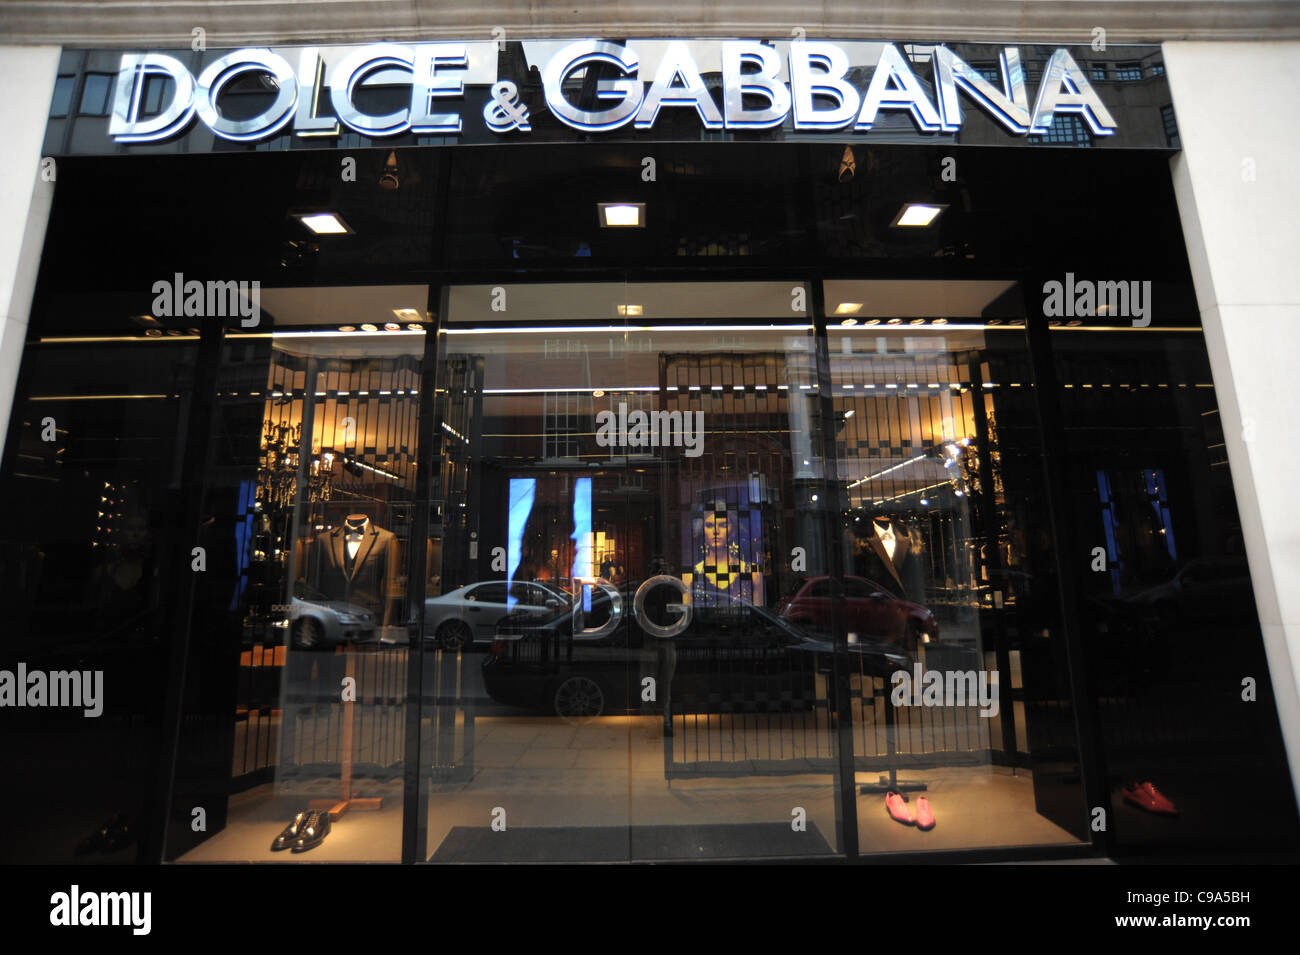 Exterior shot of the Dolce and Gabbana store on Bond Street London England 2011 - Image Copyright Ben Pruchnie 2011 - Stock Image